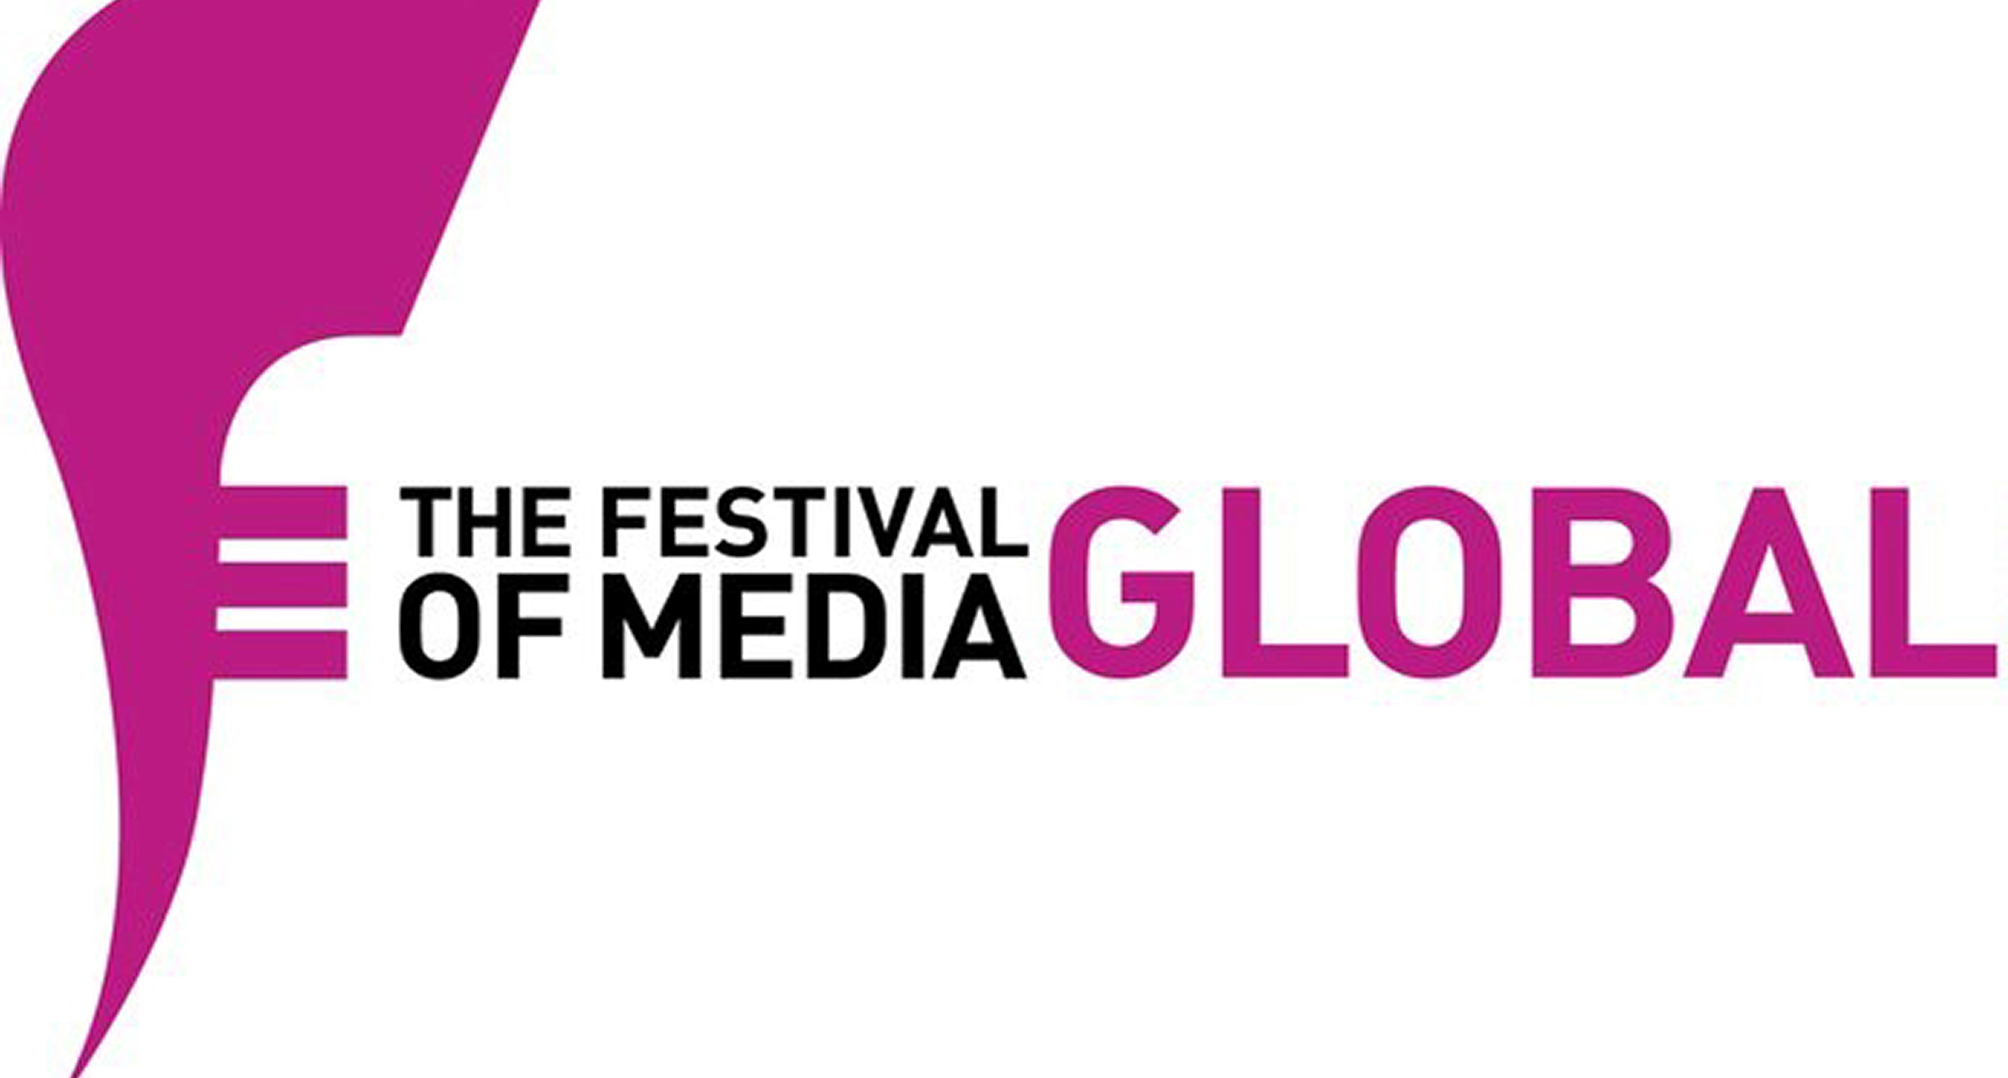 Festival of Media Global: rinnovata la partnership con IAB Italia